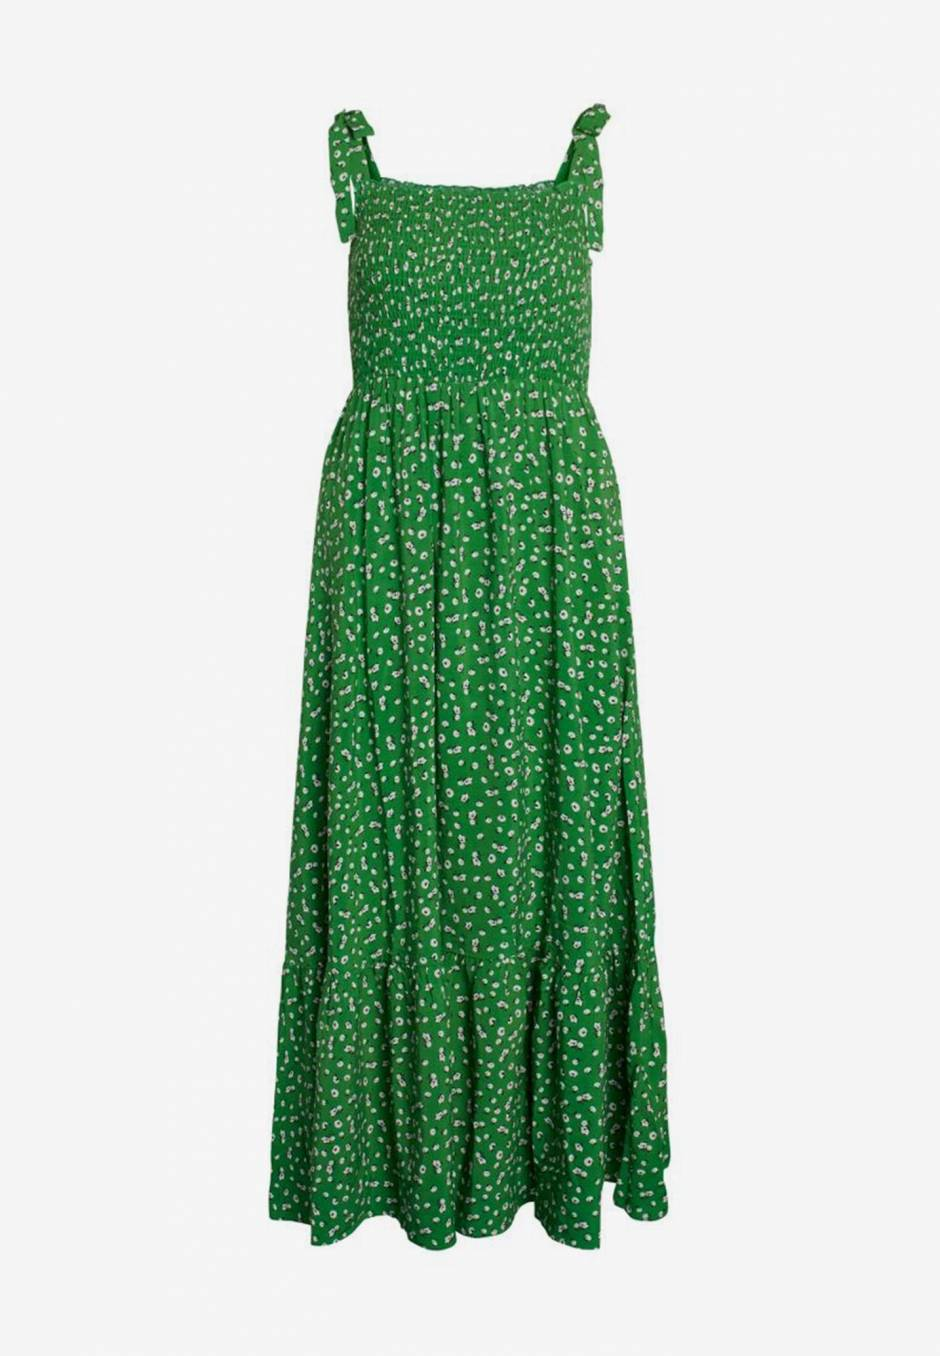 Co'couture Green Flower Strap Dress